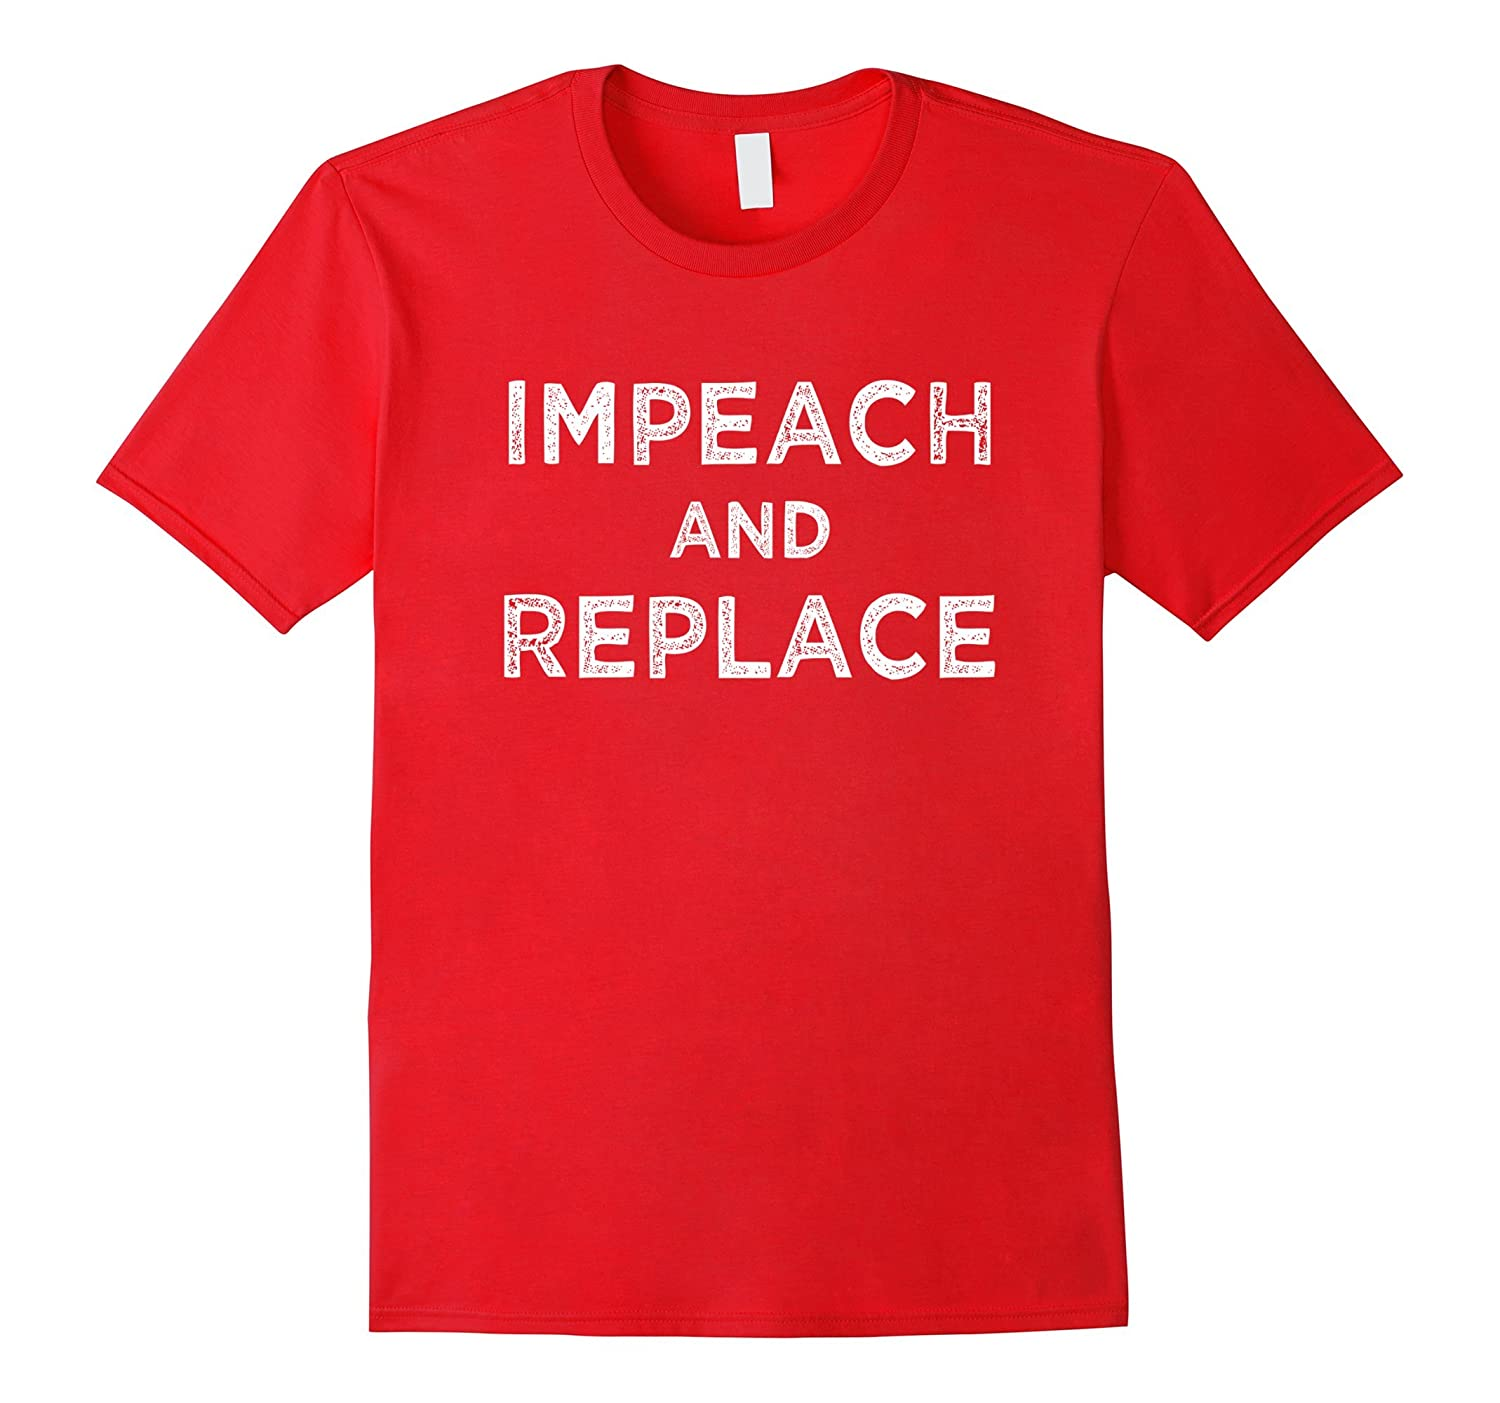 Resist T-Shirt  Liberal Activist  Impeach and Replace